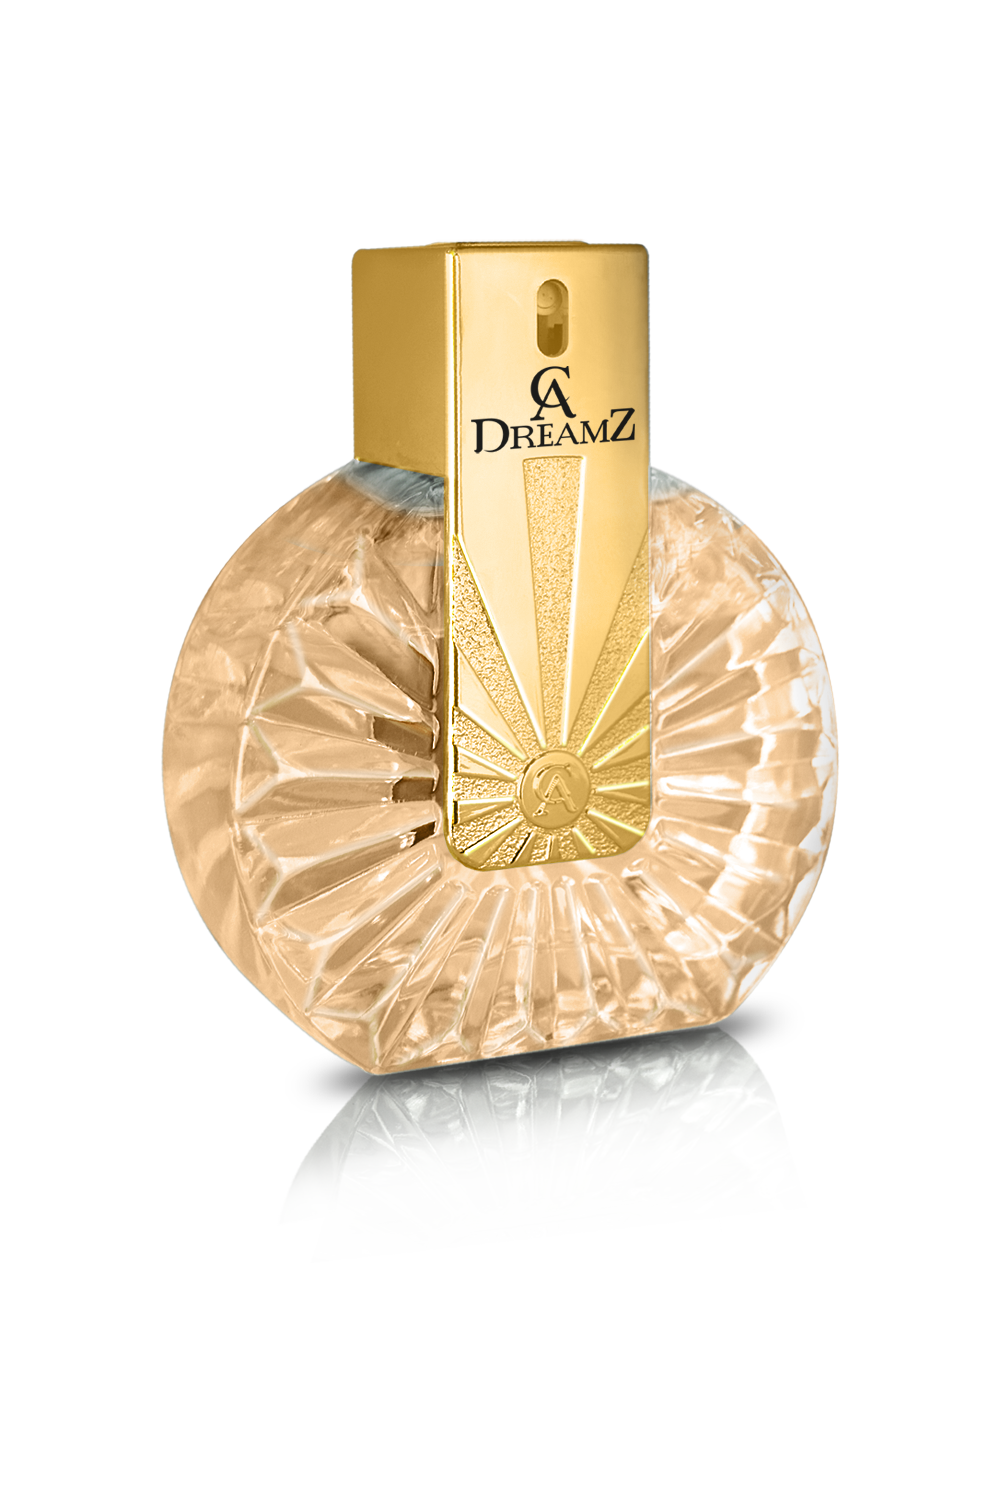 Online fragrance scent uk. Perfume clipart pleasant smell